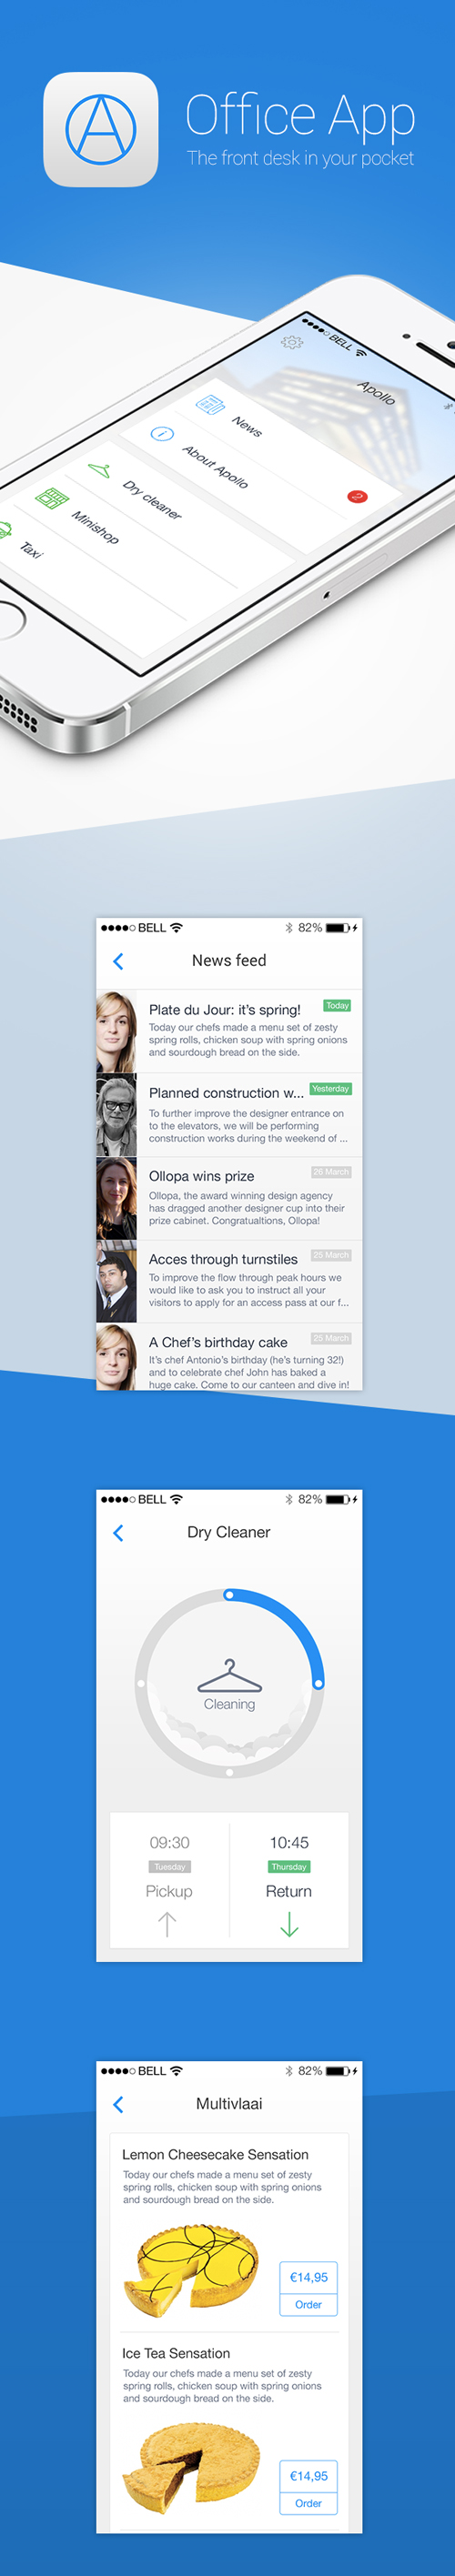 Amazing Mobile App UI Designs with Ultimate User Experience - 27